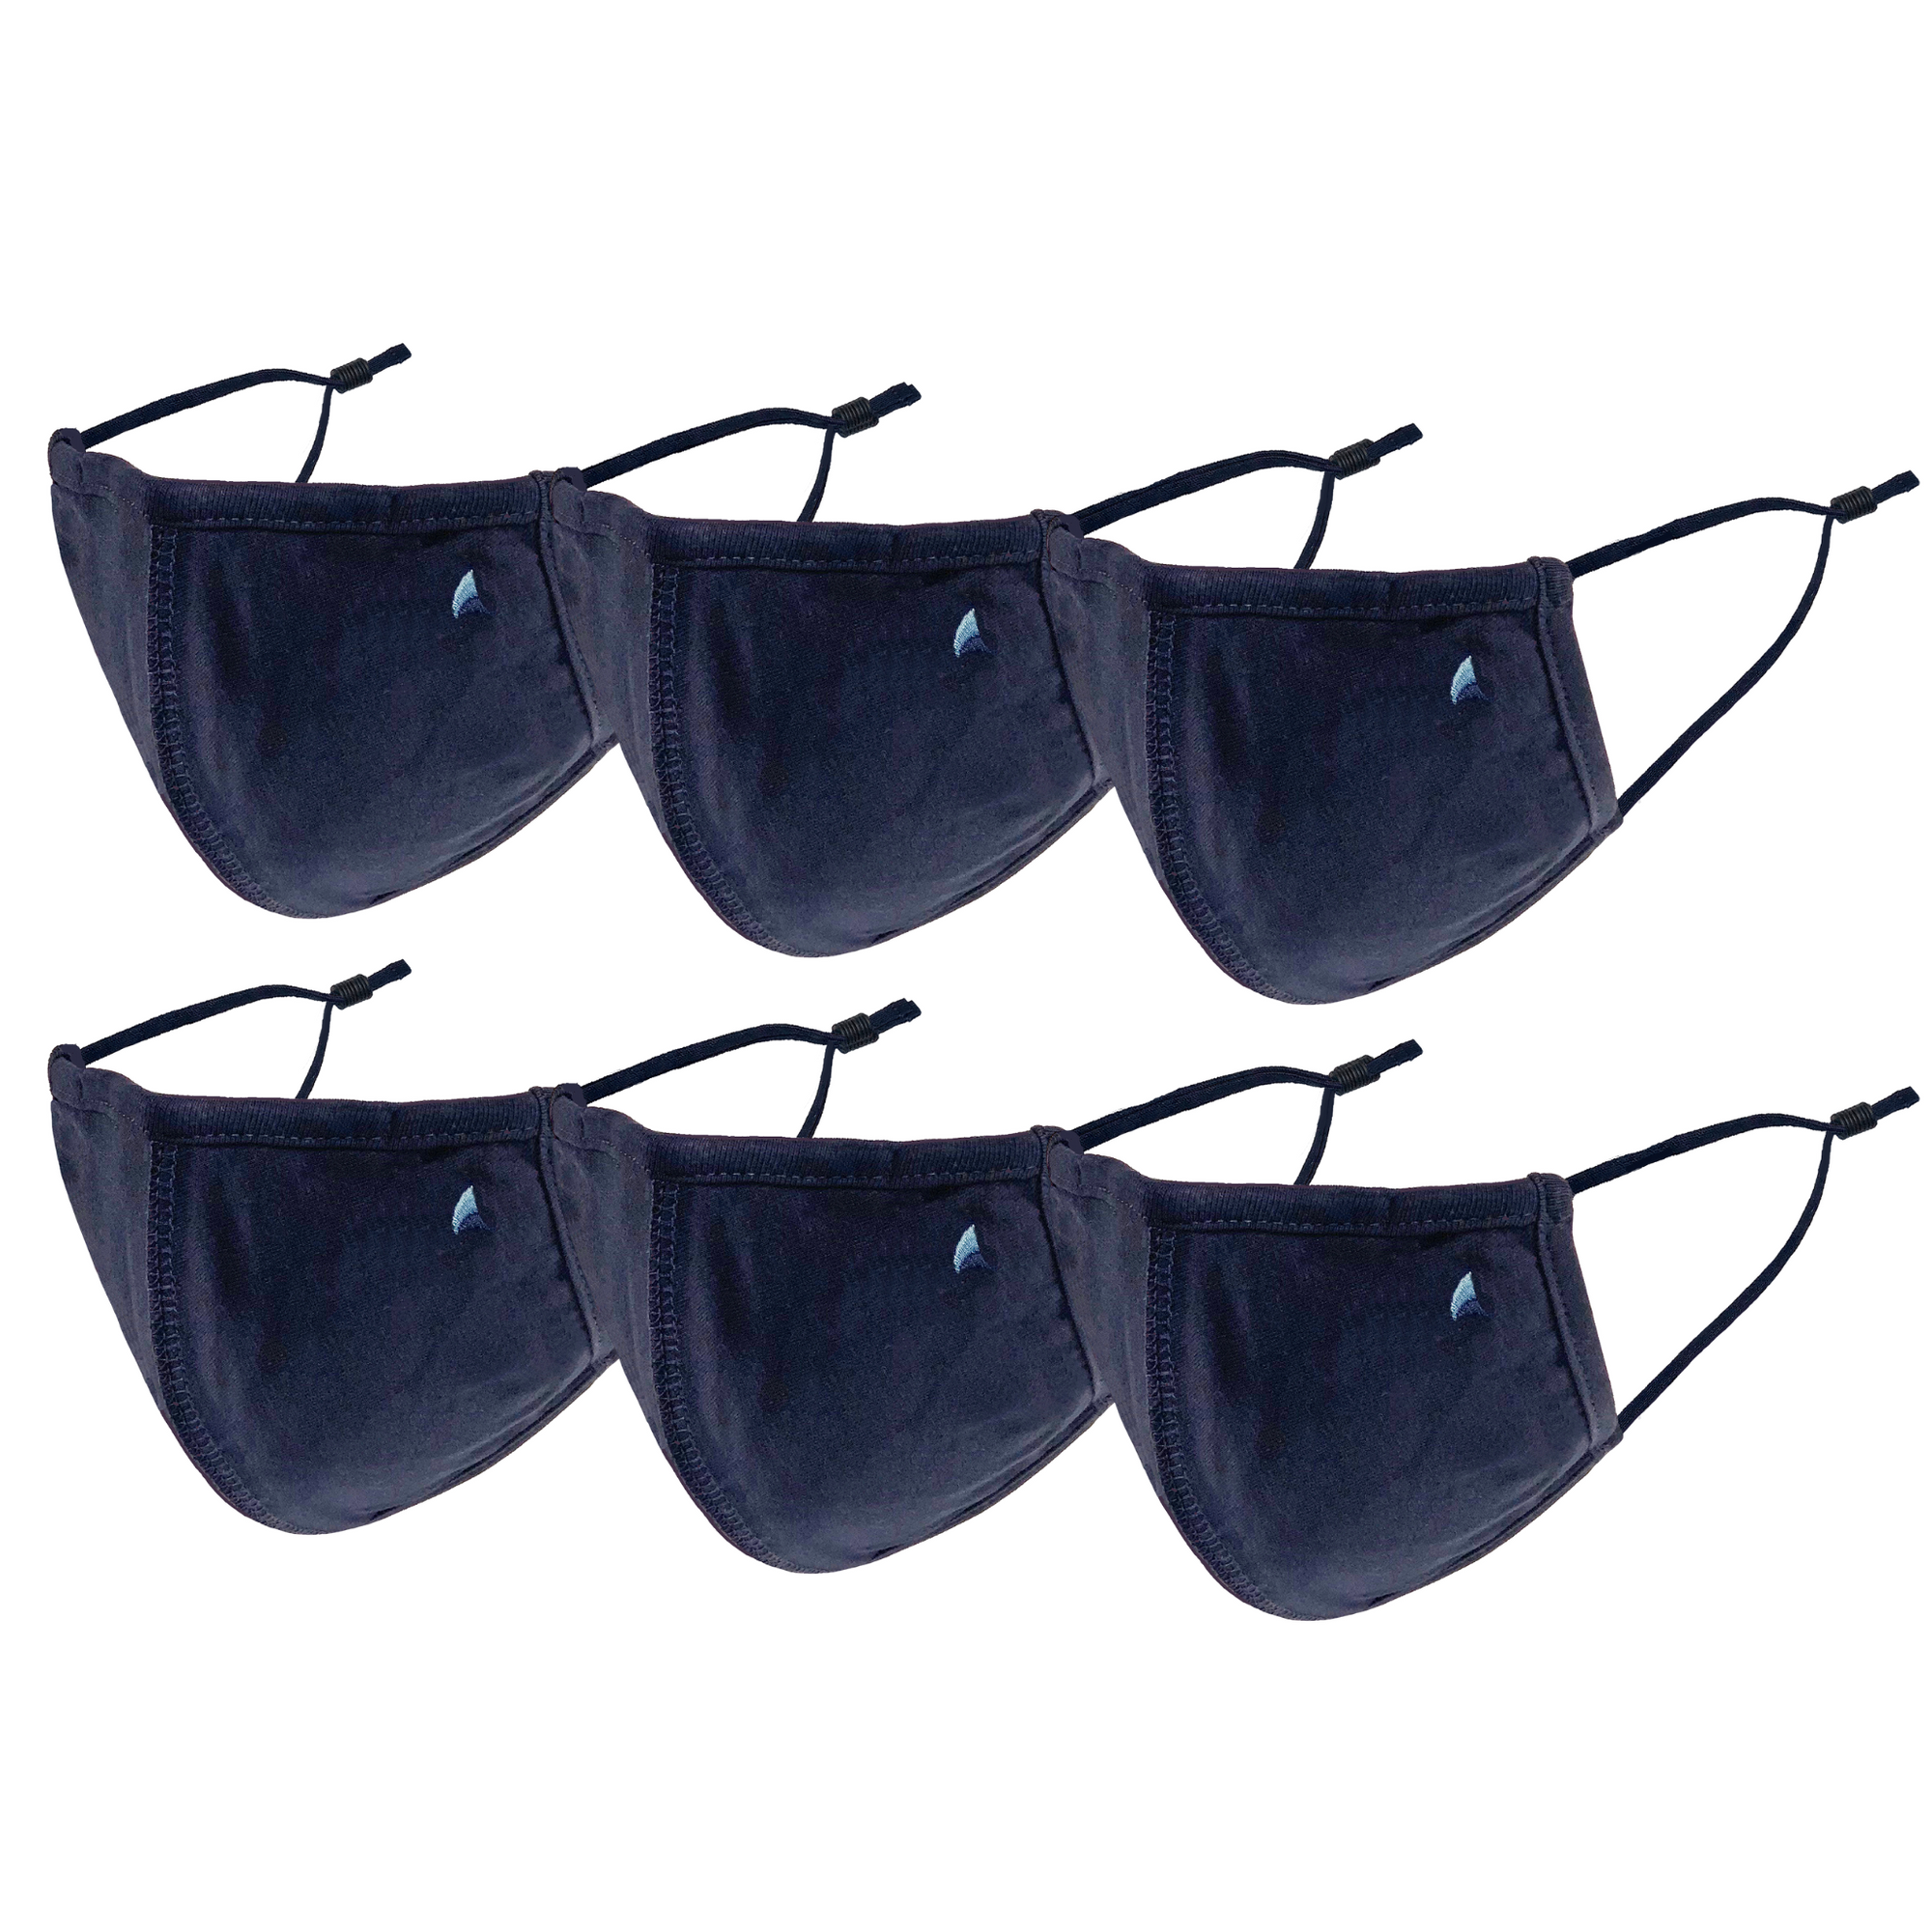 6 pack of Puretec Cool ™ Nanofiber Filter Mask in Navy